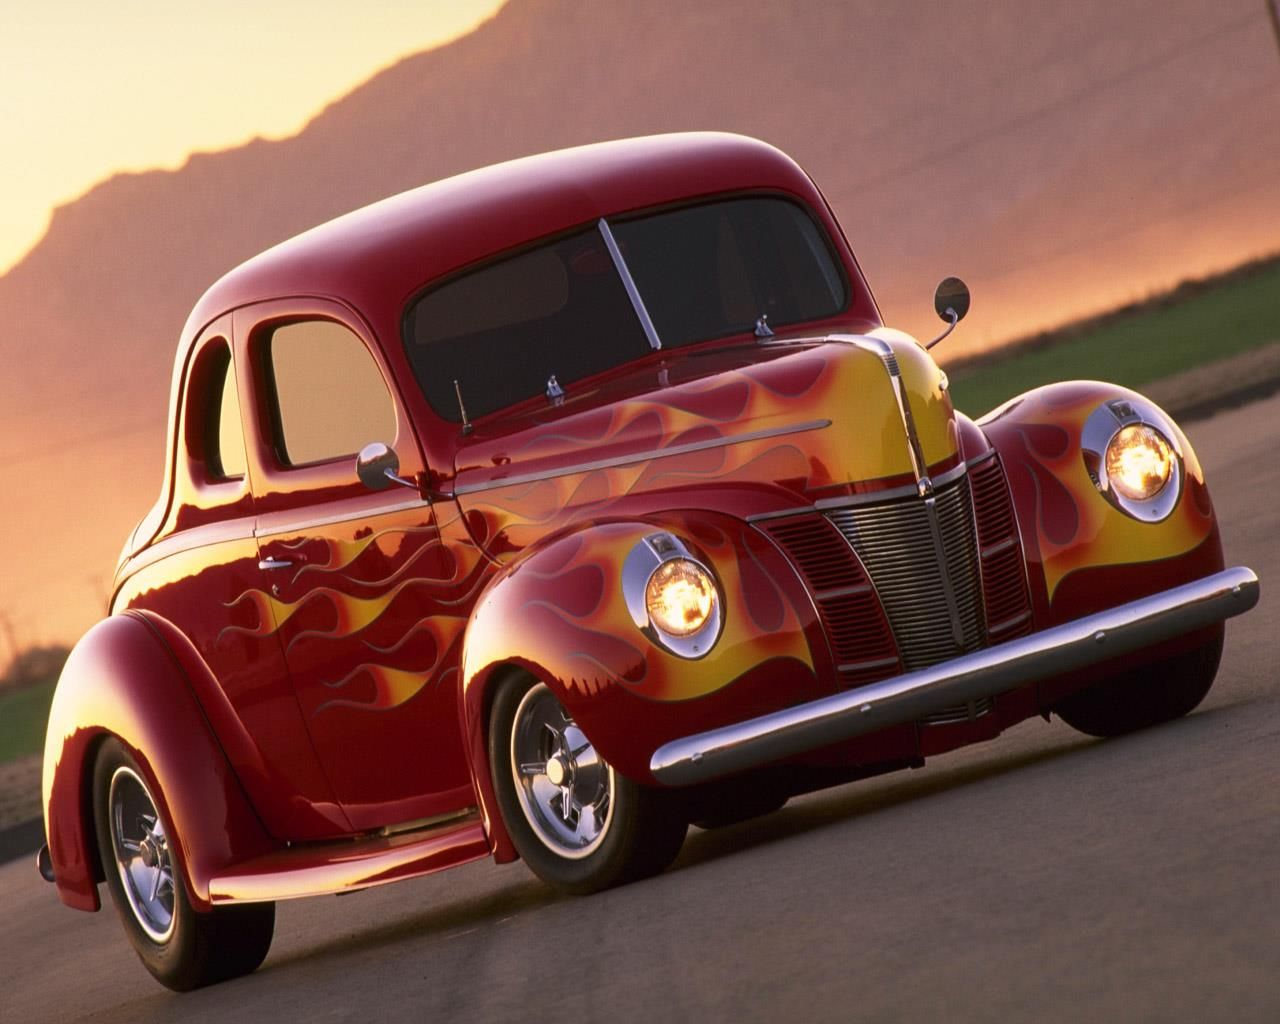 Classic red hot rod with yellow flames | Awesome Cars | Pinterest ...